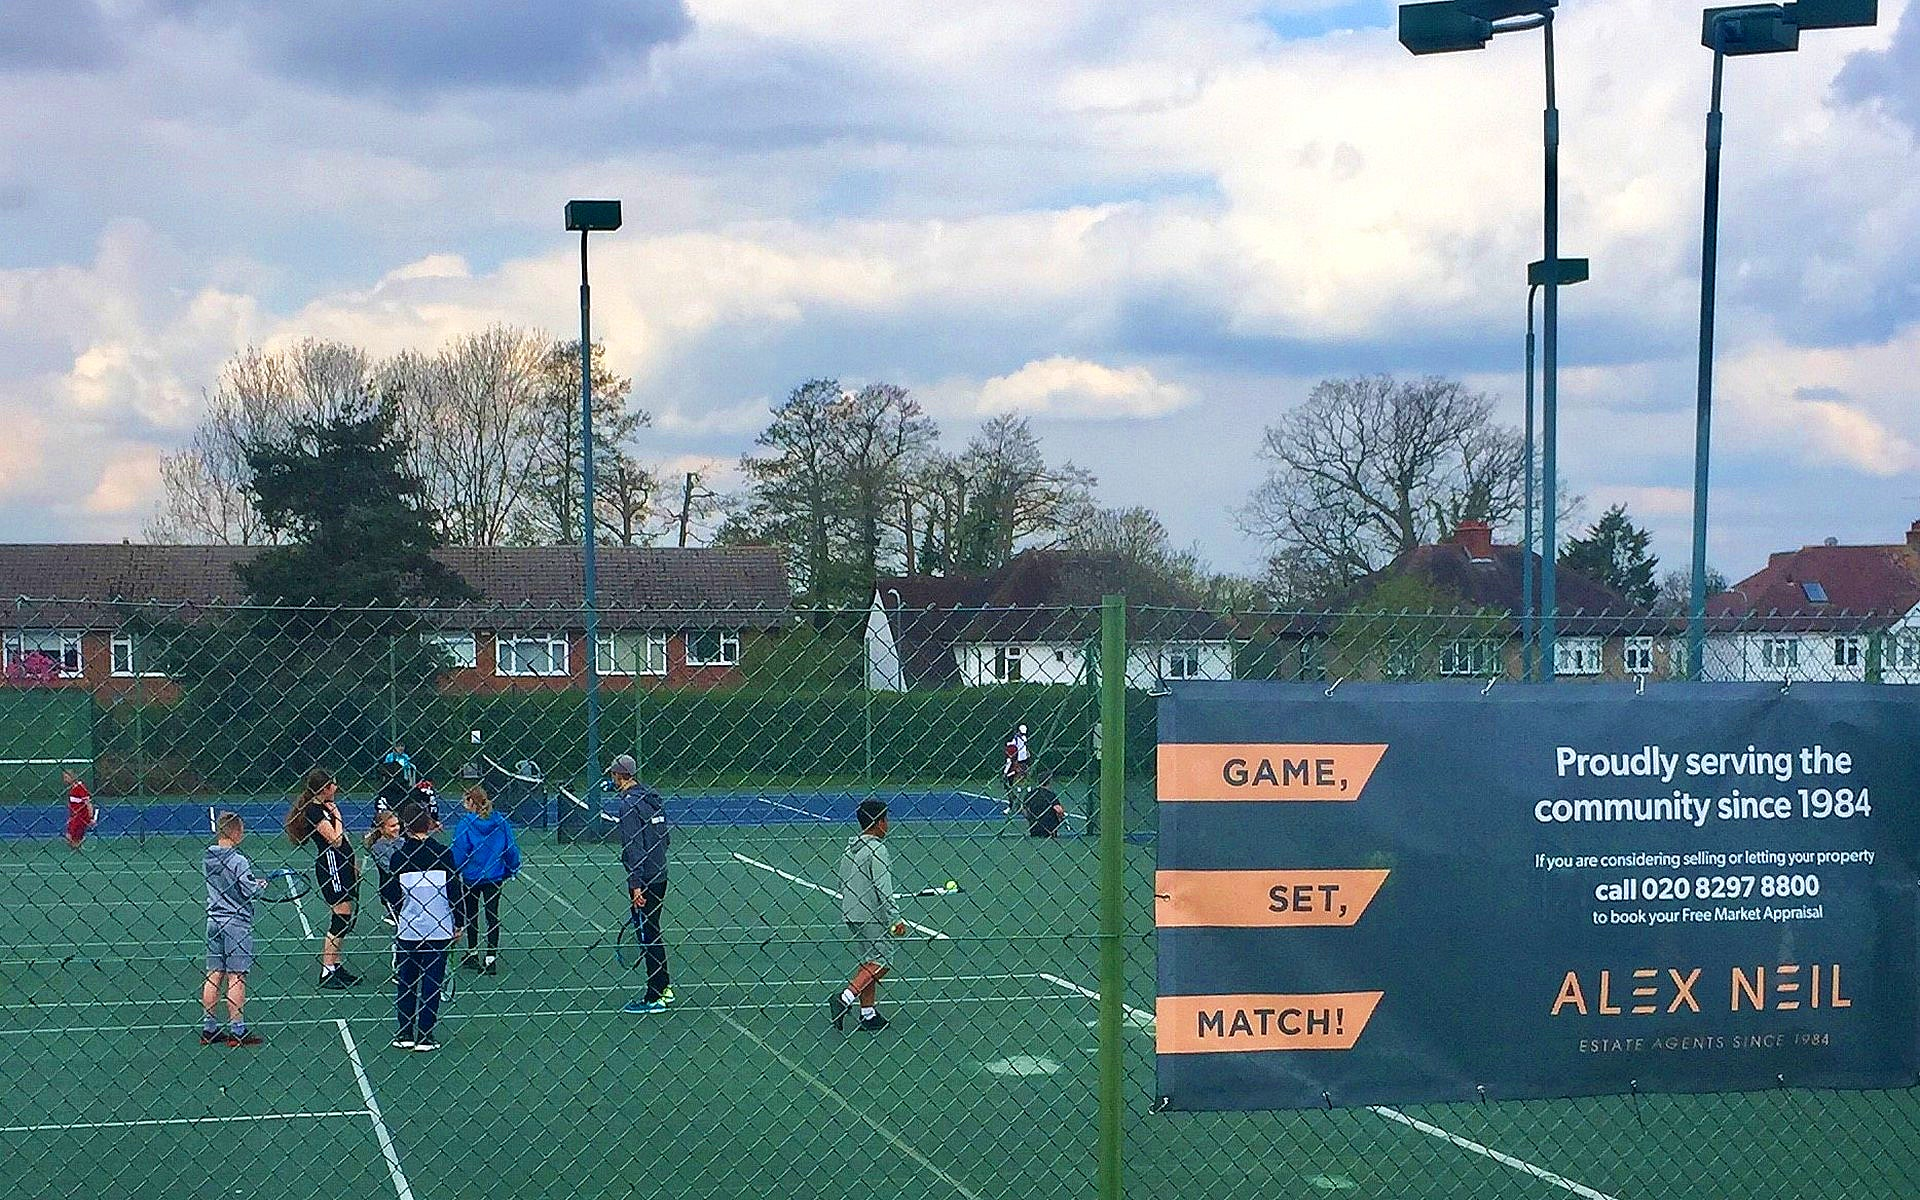 Players at Crescent Lawn Tennis Club Sidcup